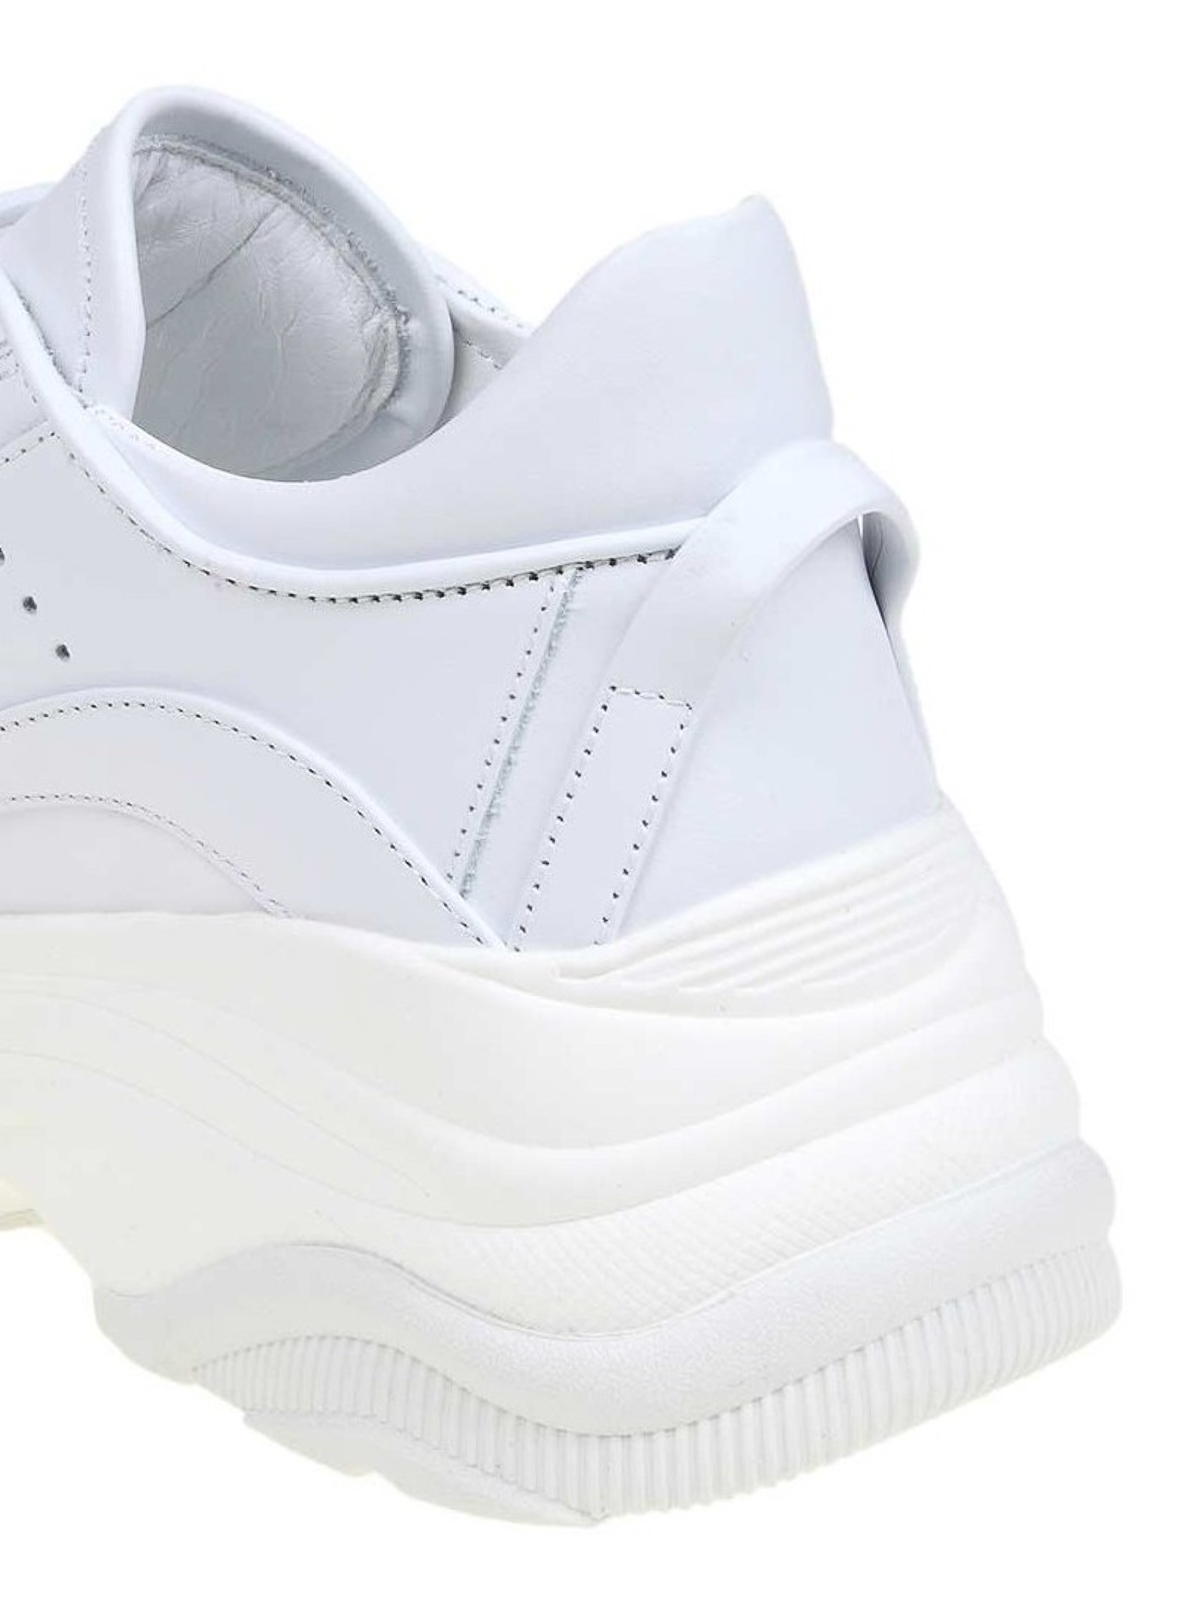 58beeb8a48c Dsquared2 - Bumpy 551 white sneakers - trainers - SNW004106500001M1048